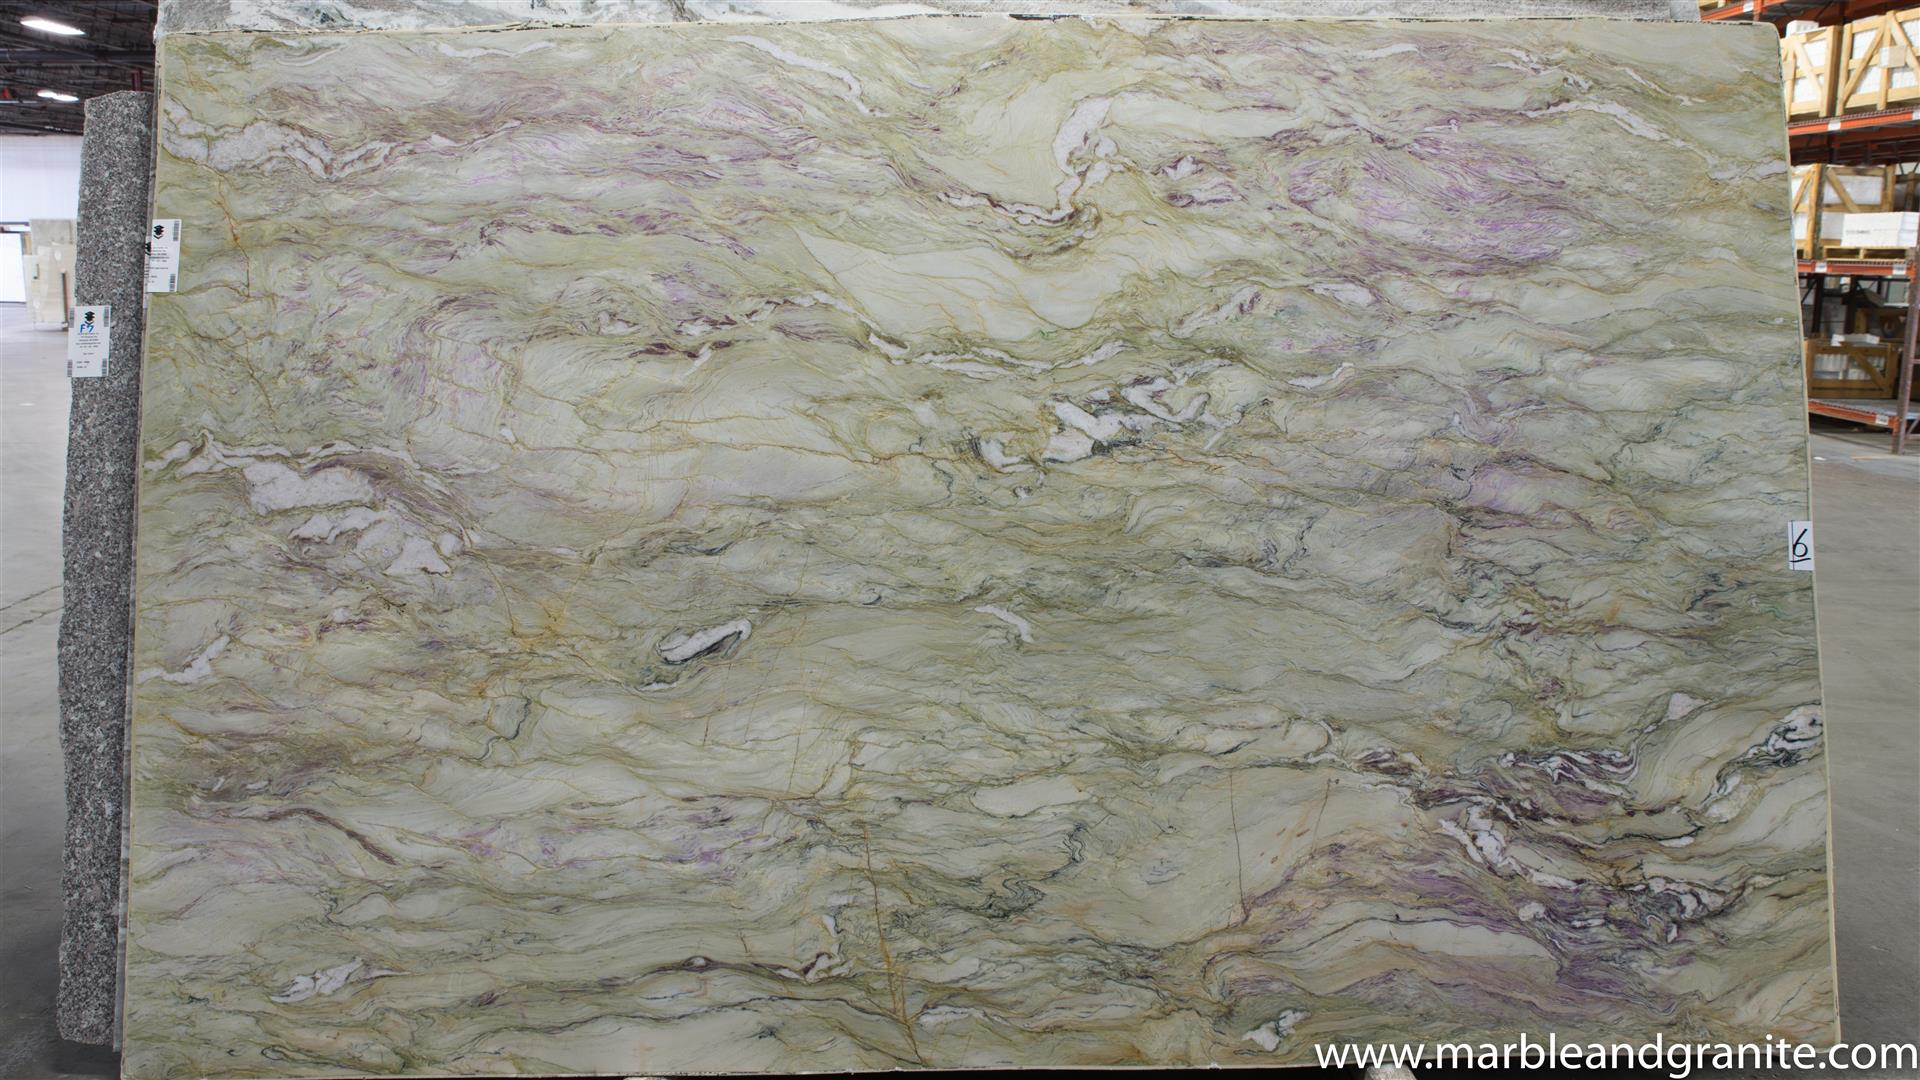 Marble Vs Granite 7 Things You Need To Know About Quartzite - Marble & Granite